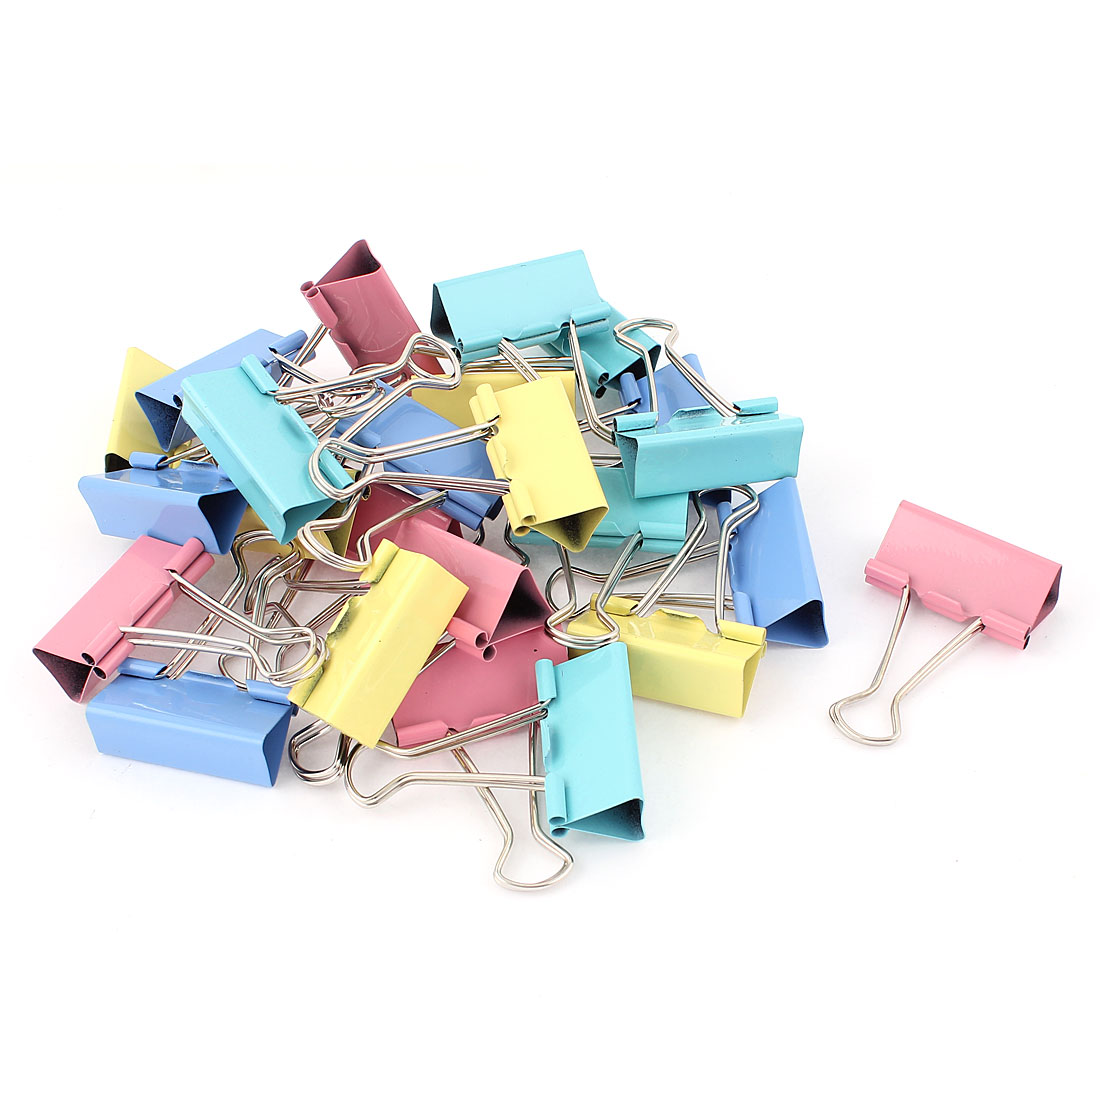 School Office Metal Document Organize Stationery Paper Clamp Binder Clips 24pcs